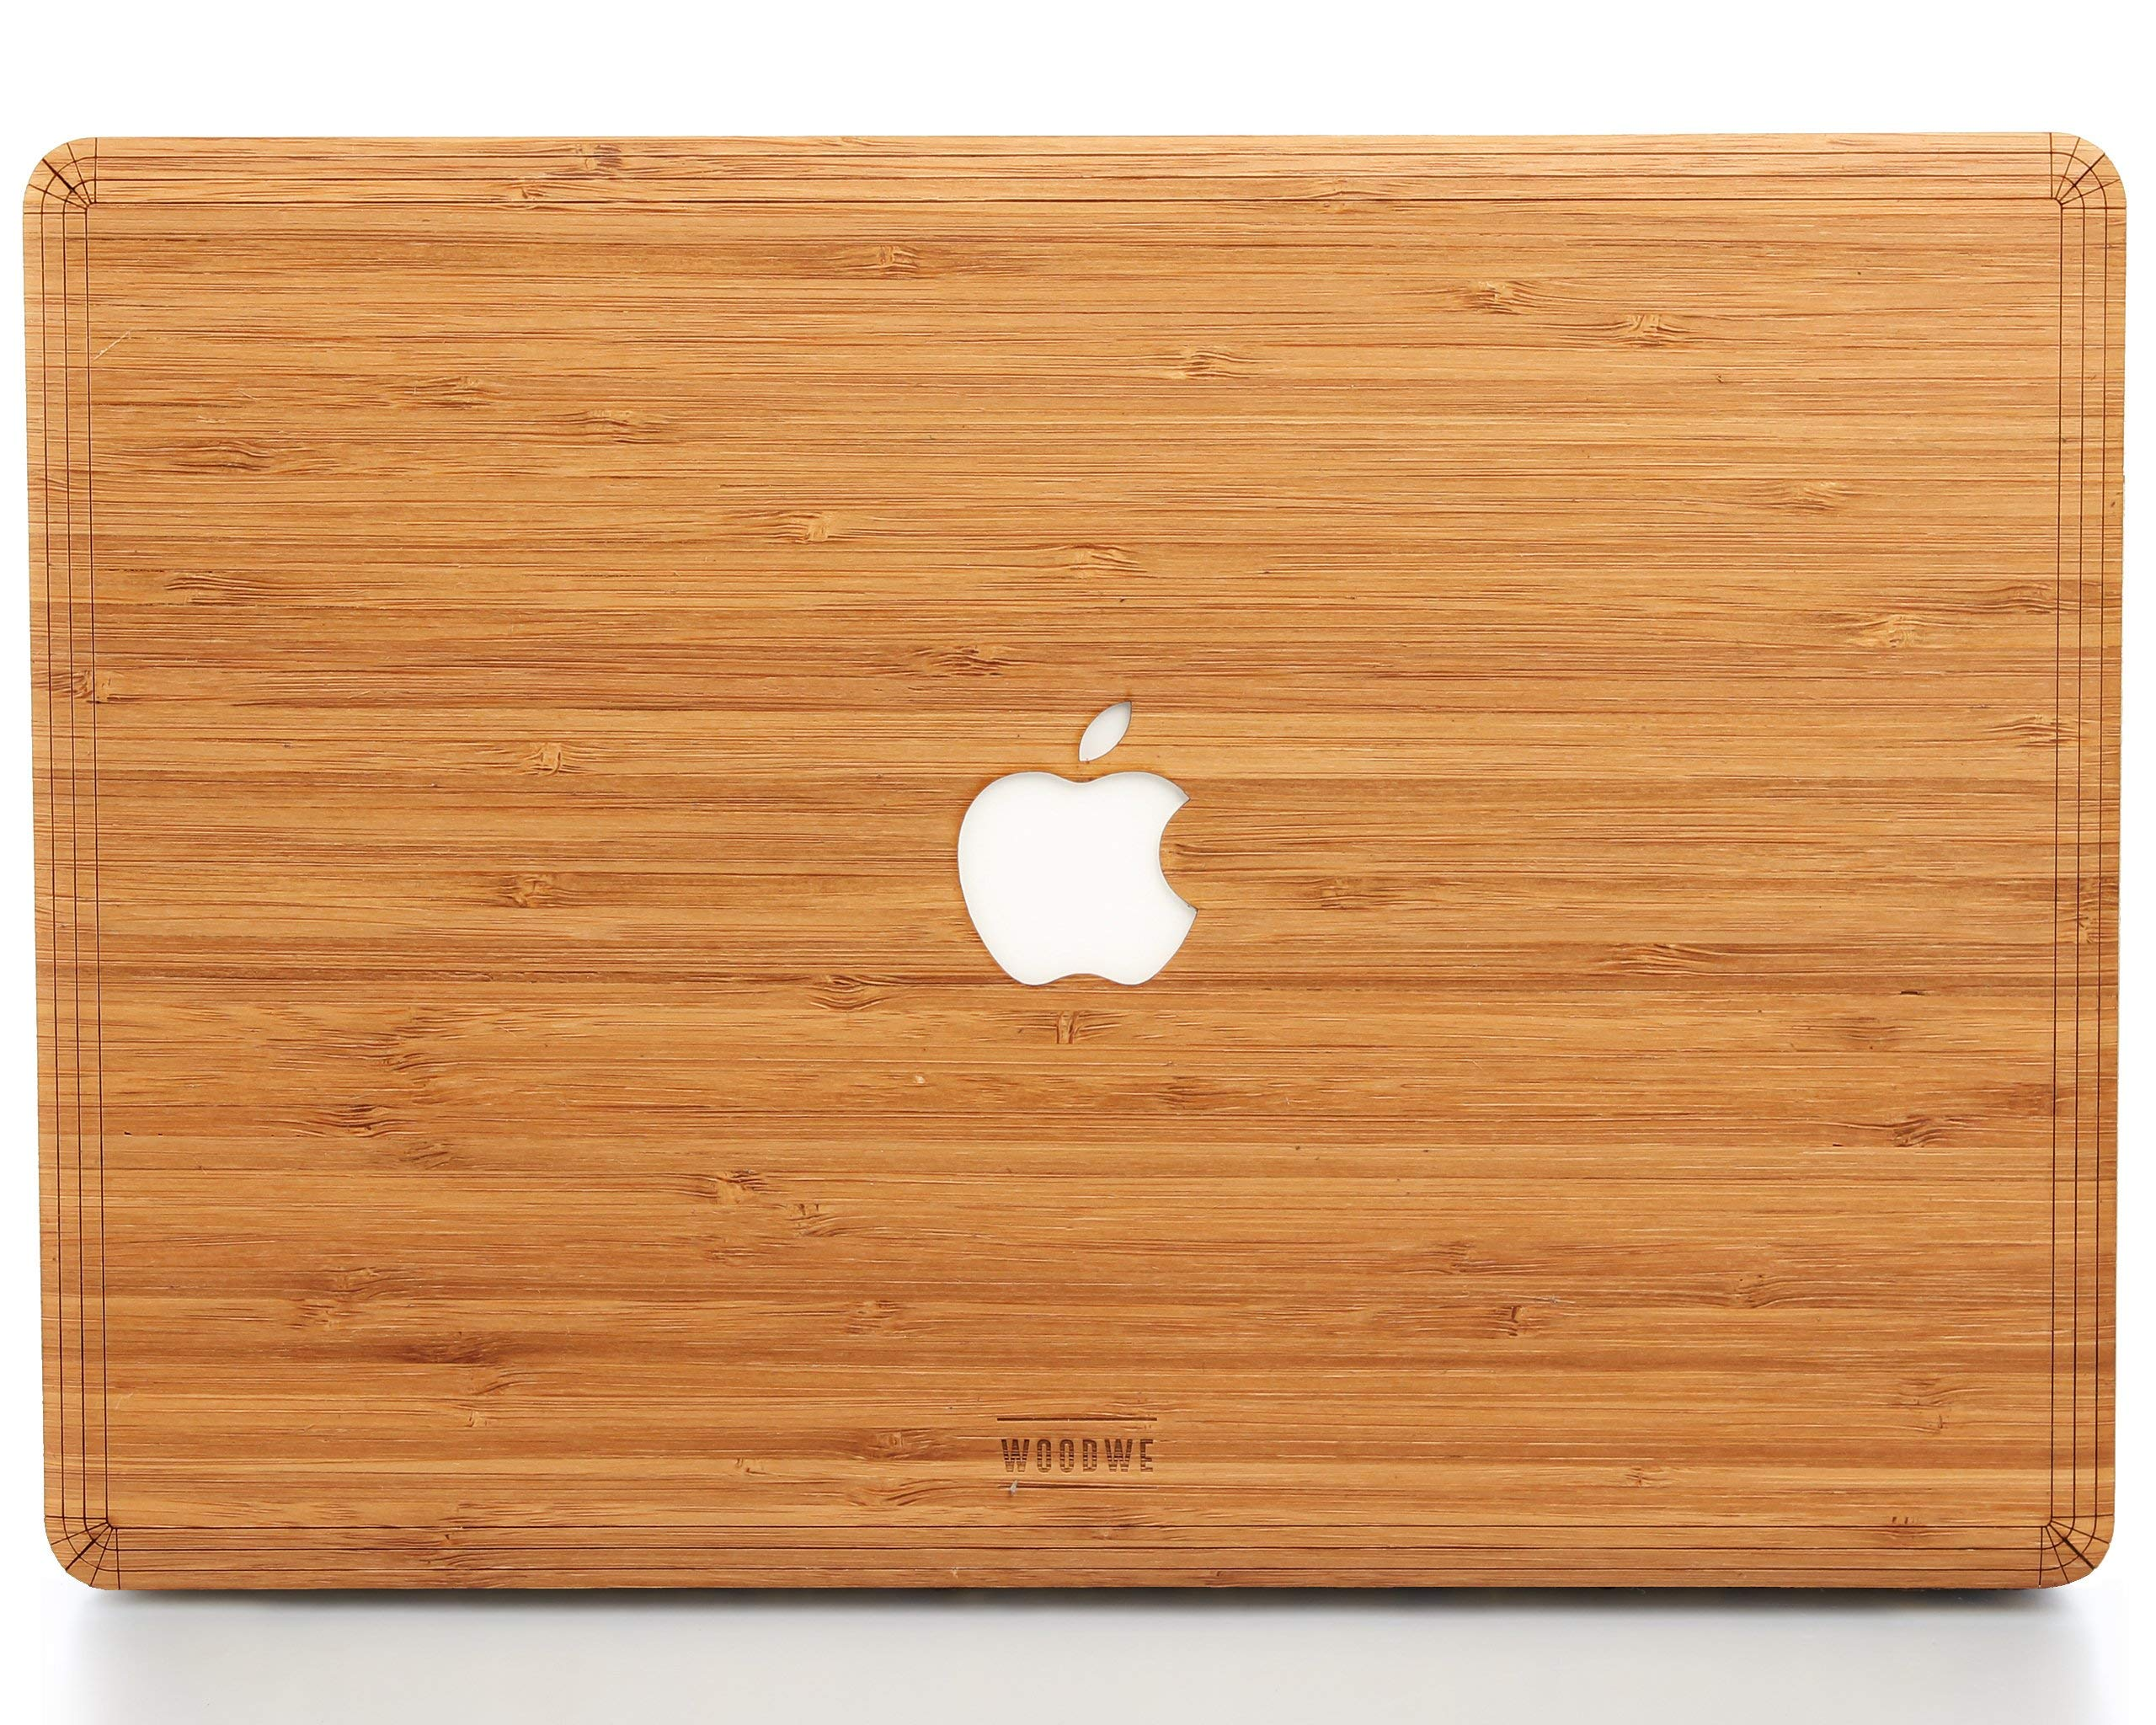 WOODWE Real Wood MacBook Skin for Mac Air 13 inch Non Retina Display | Model: A1237/A1304/A1369/A1466; Early 2008 - Mid 2017 | Natural Bamboo | TOP ONLY